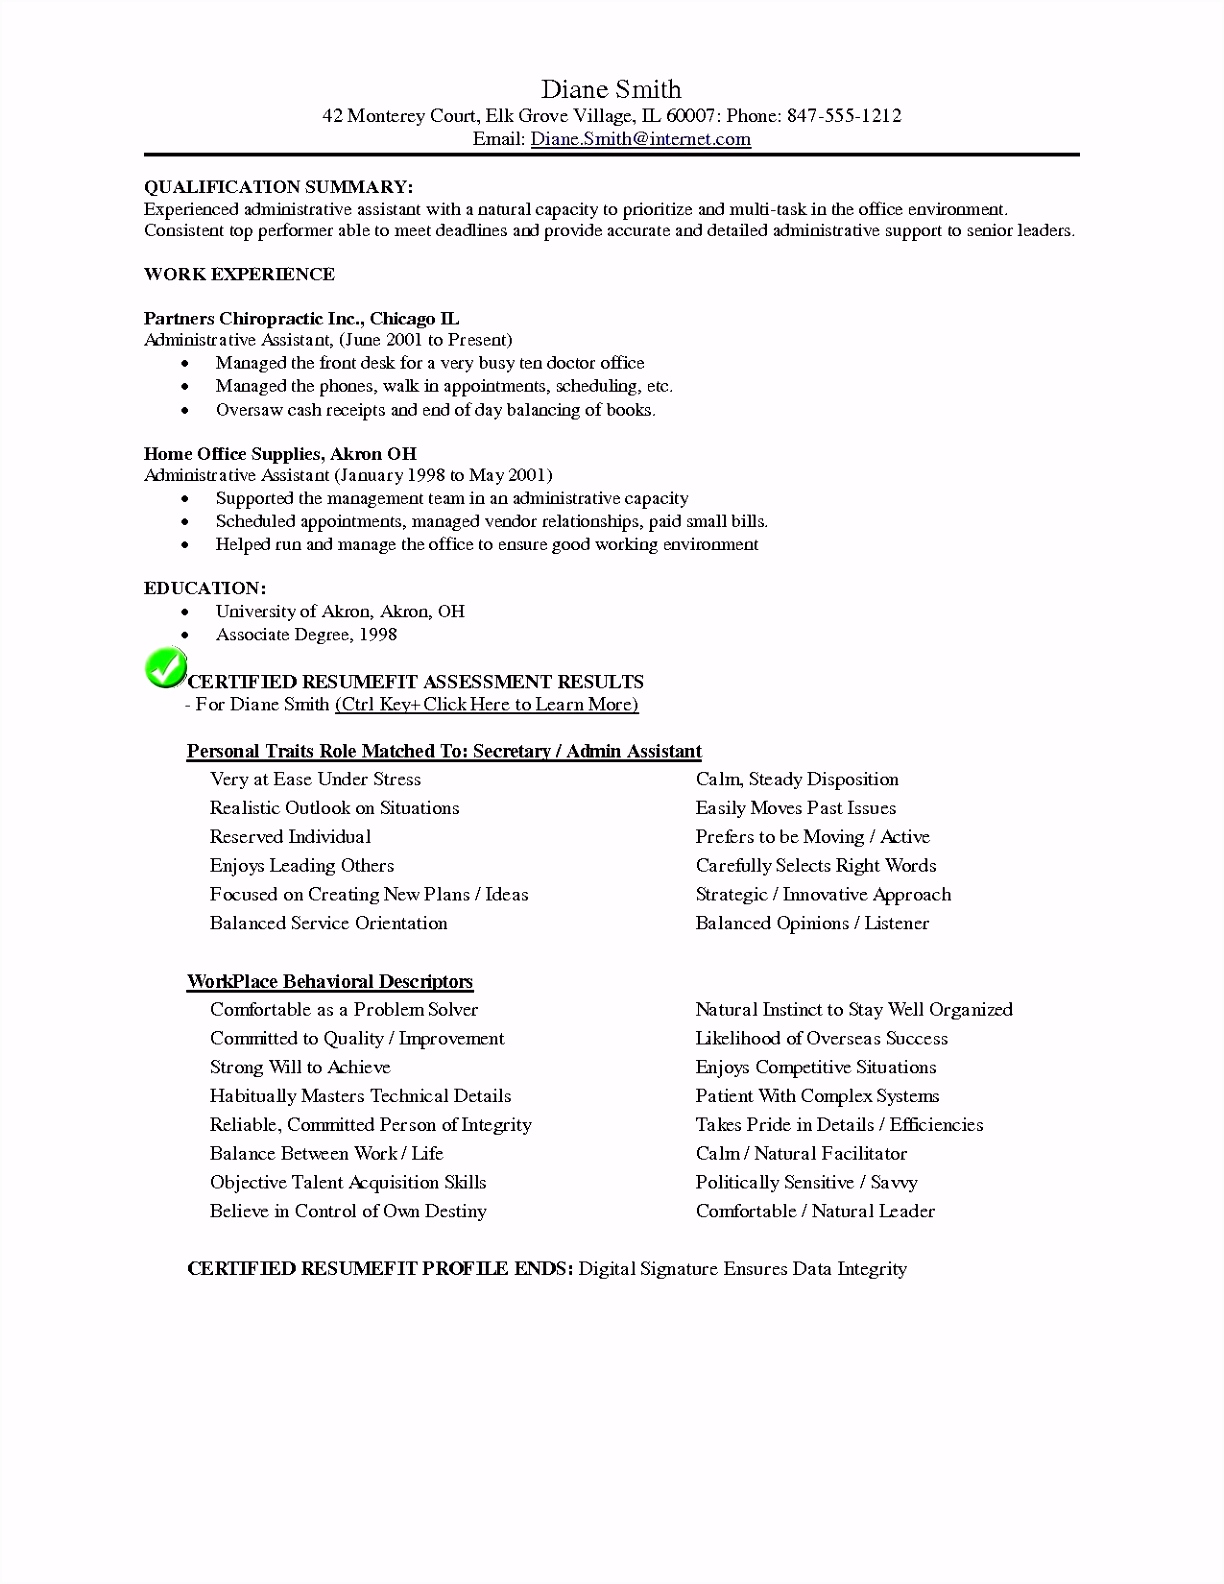 Narko24 Resume Letter And Template